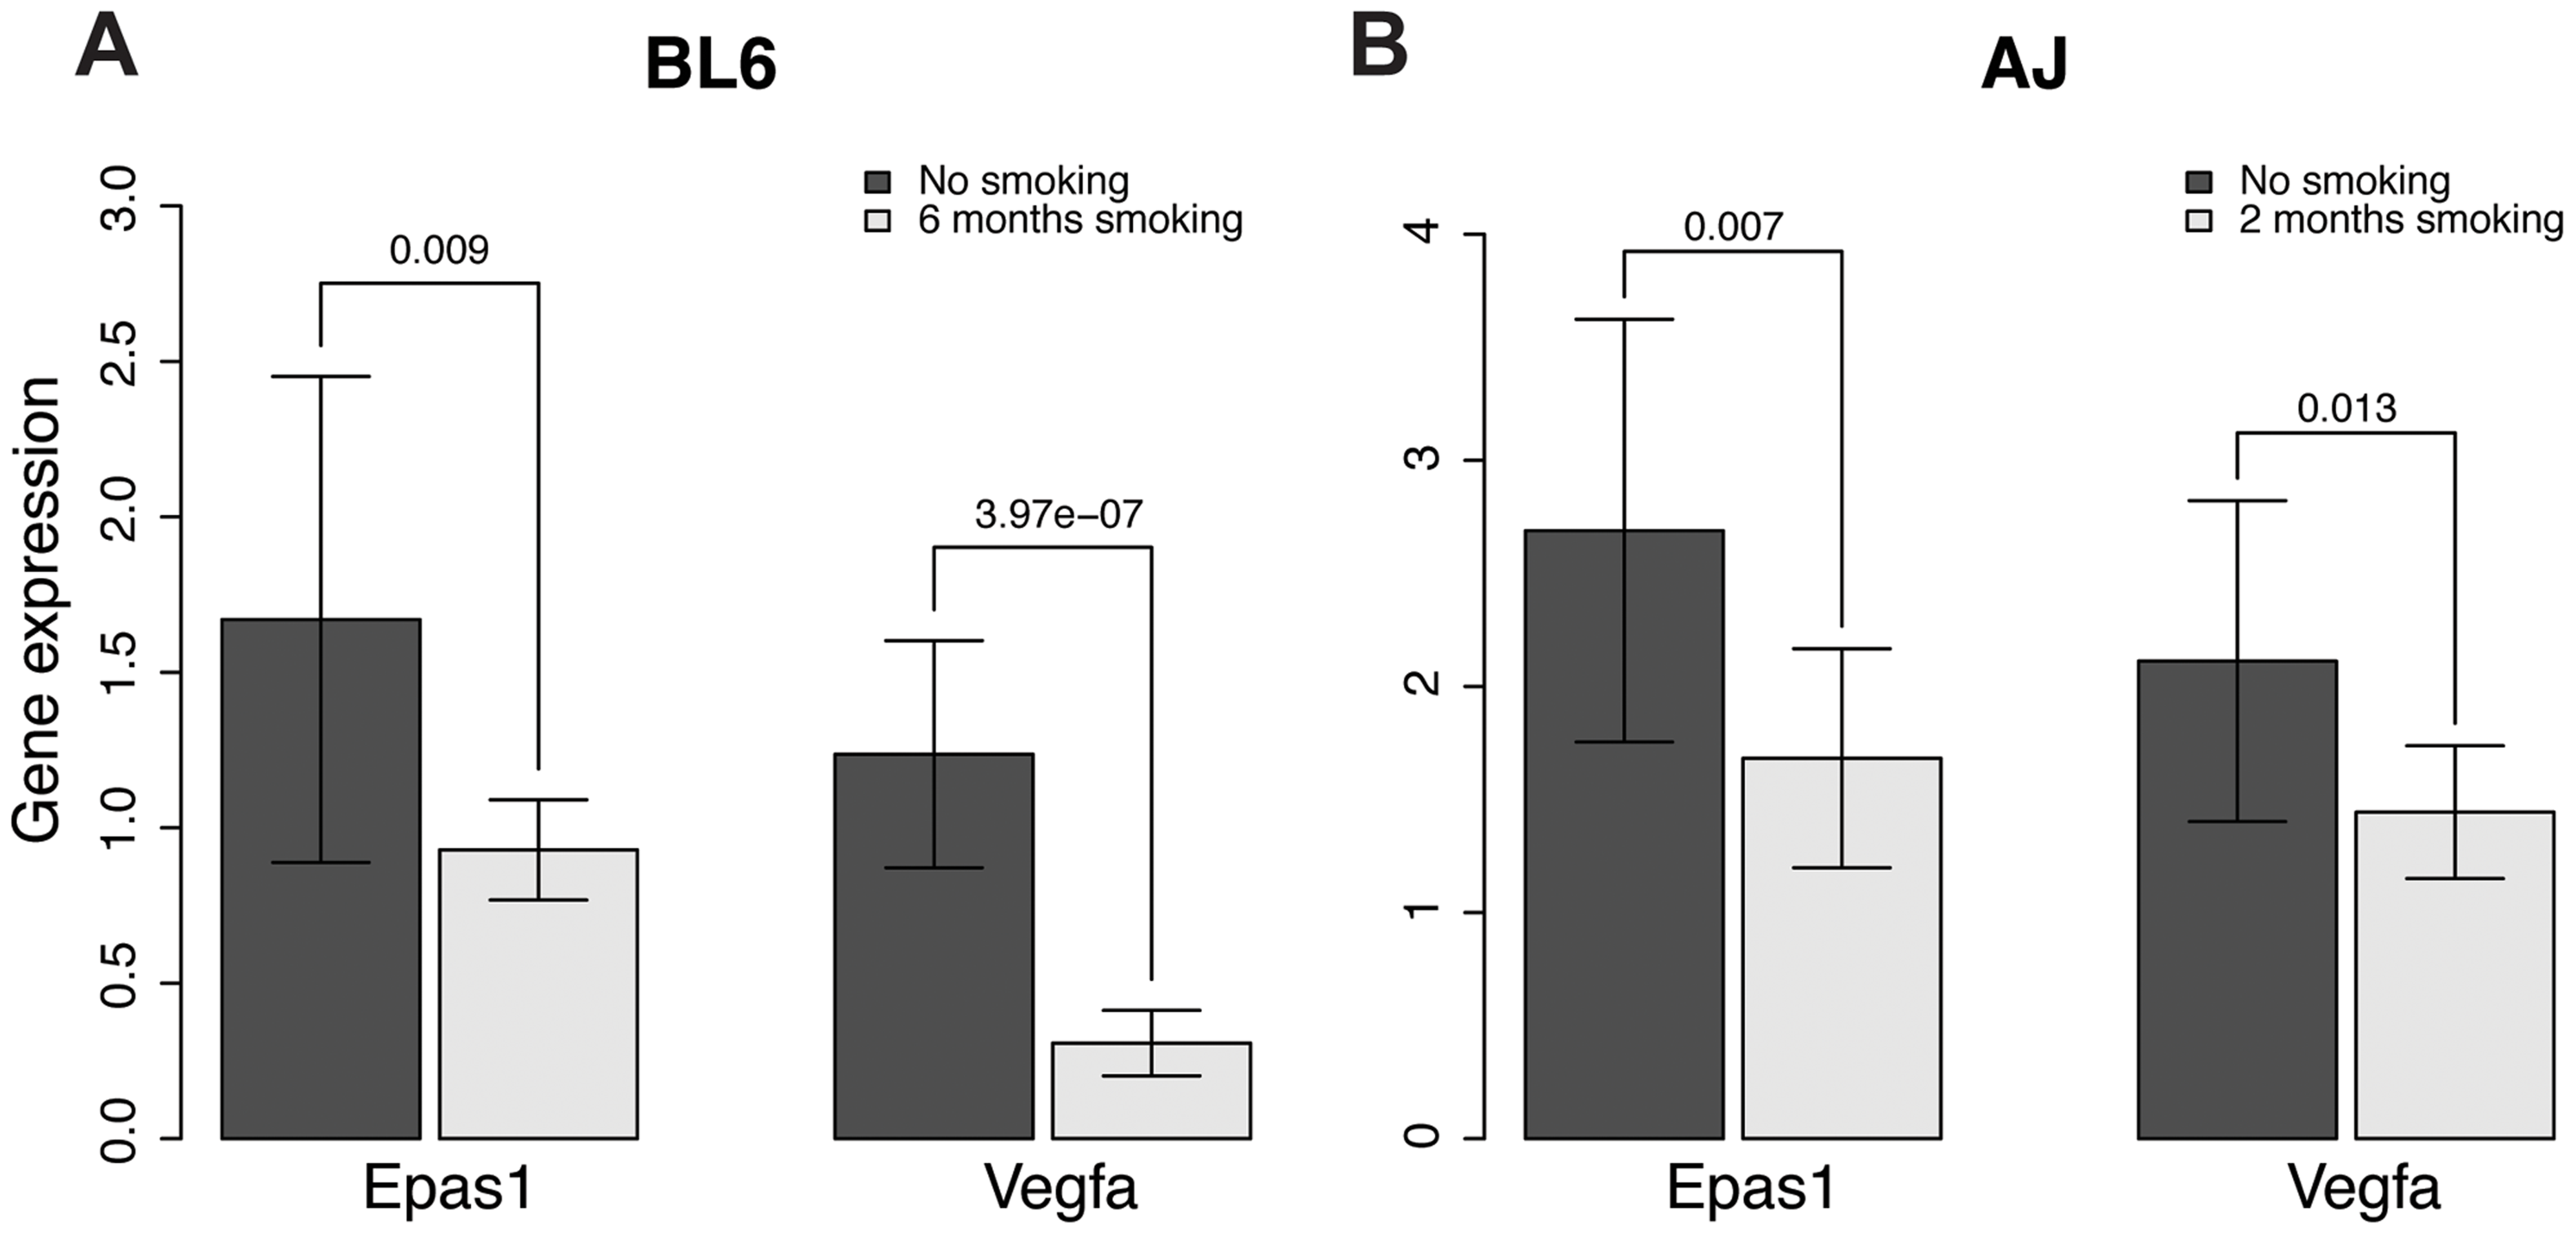 Gene expression levels of <i>Epas1</i> and <i>Vegfa</i> were lower in chronic smoking mice than non-smoking age-matched mice at the time when COPD develops in different mouse models.